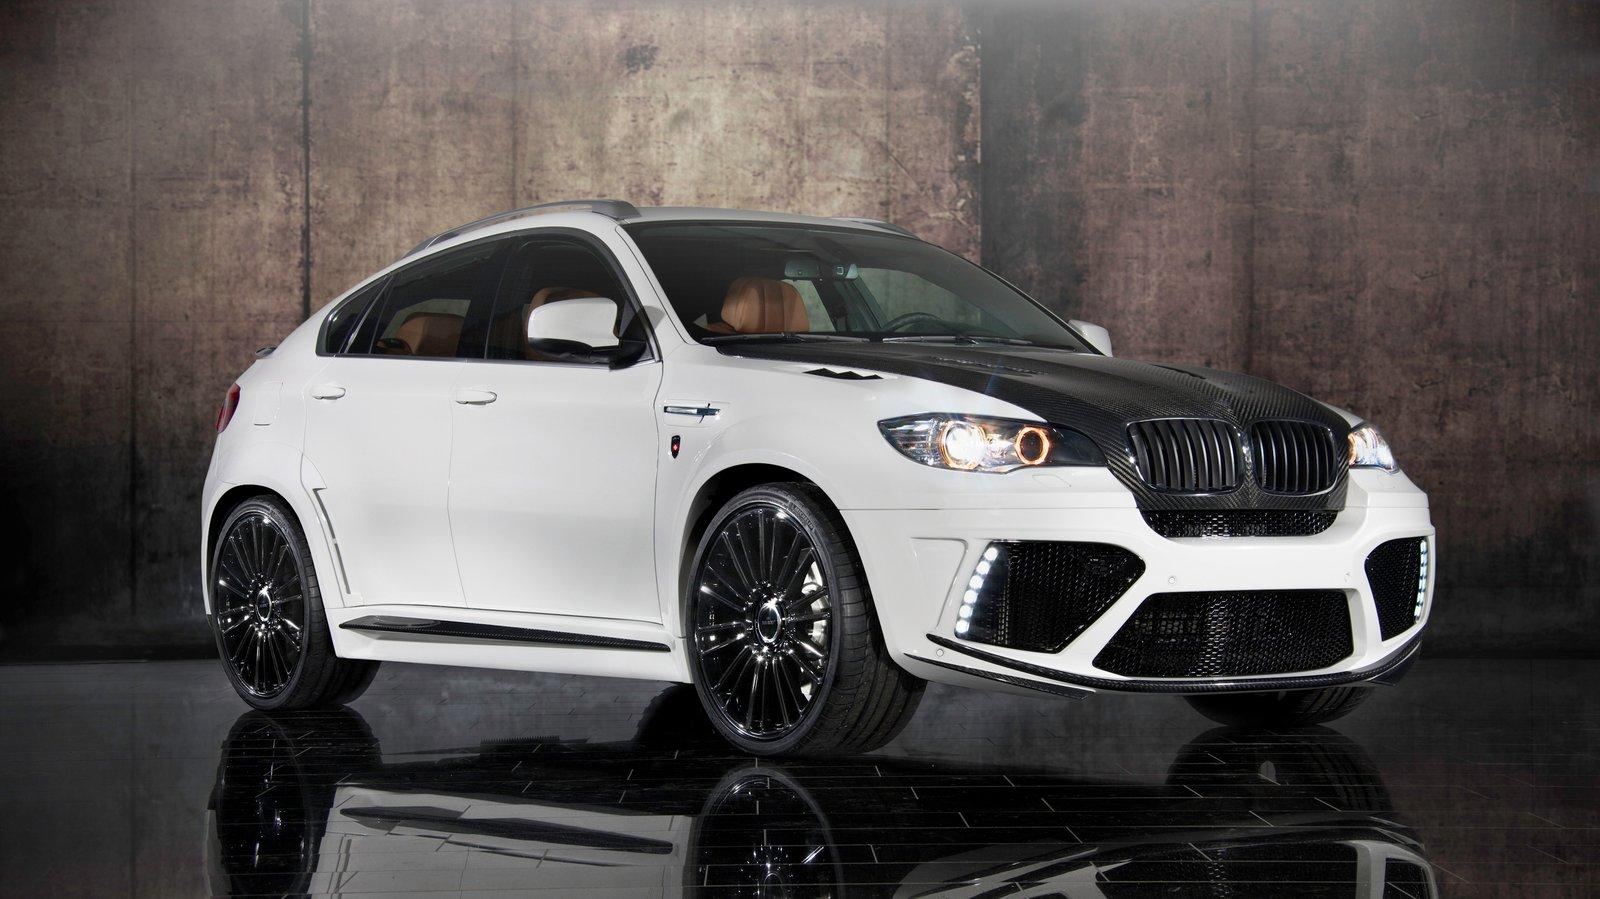 Mansory Bmw X6 M Power Over Vision